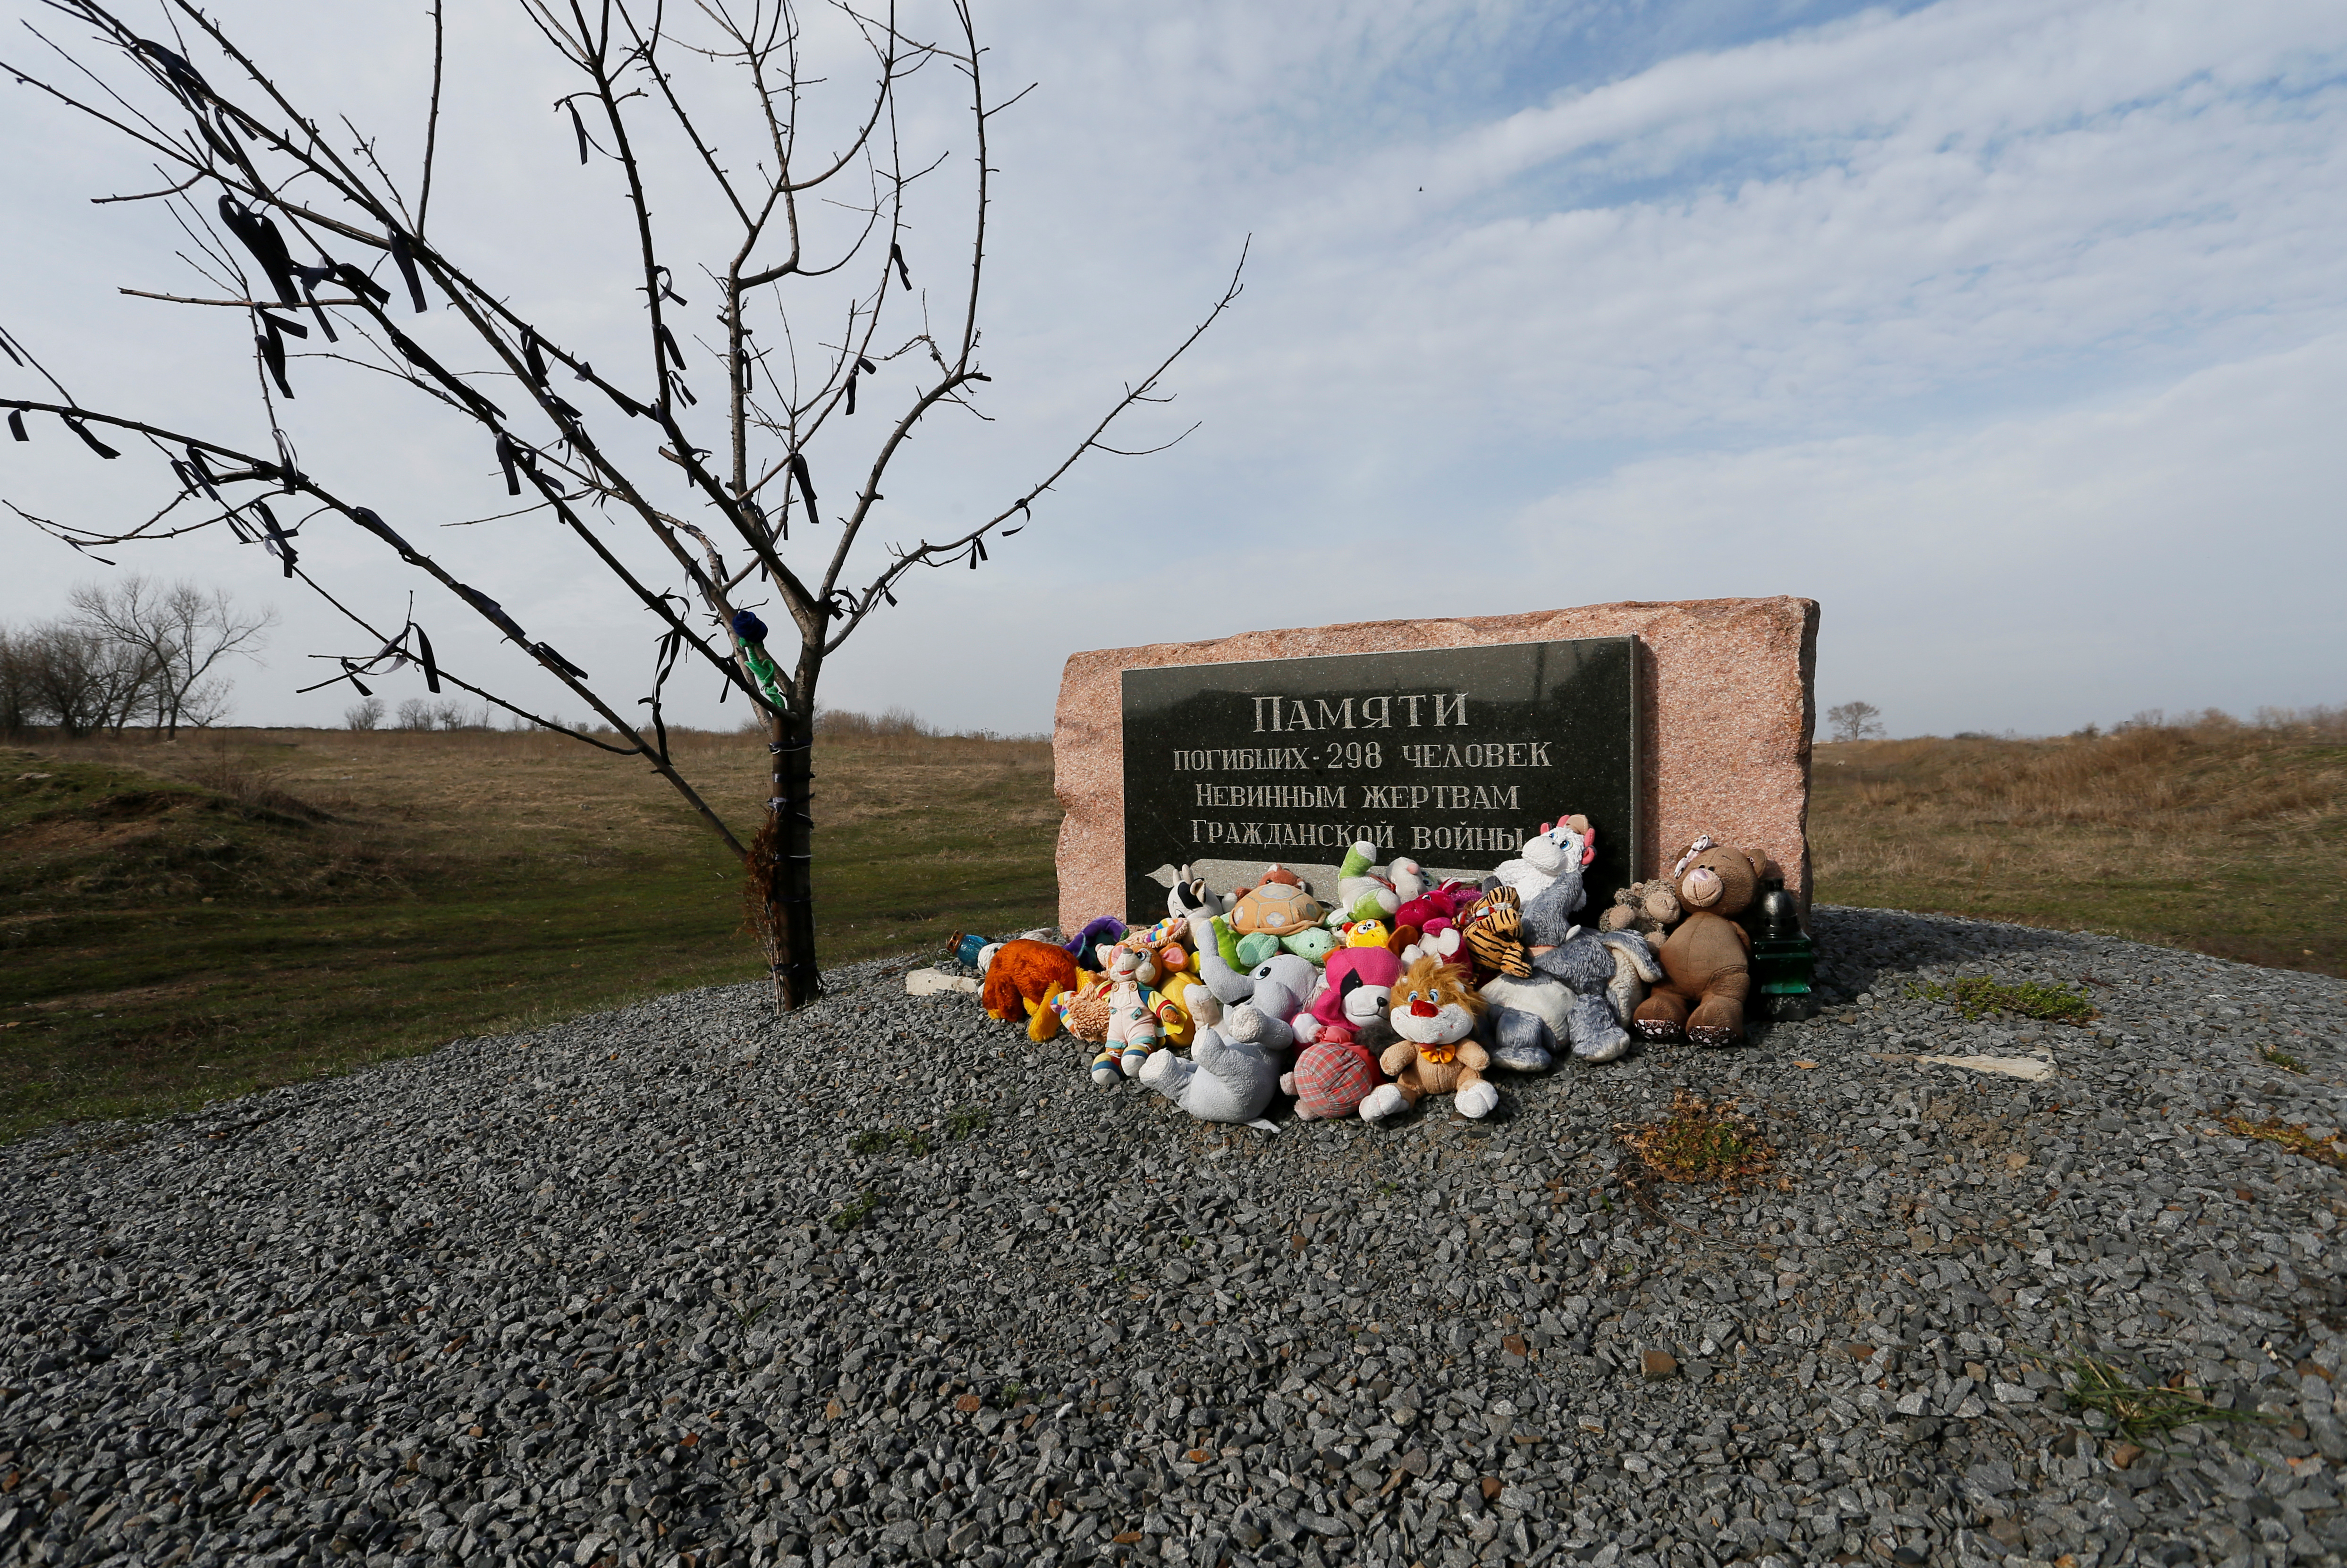 Toys are placed at a memorial to victims of Malaysia Airlines Flight MH17 plane crash near the village of Hrabove in Donetsk region, Ukraine March 9, 2020. REUTERS/Alexander Ermochenko